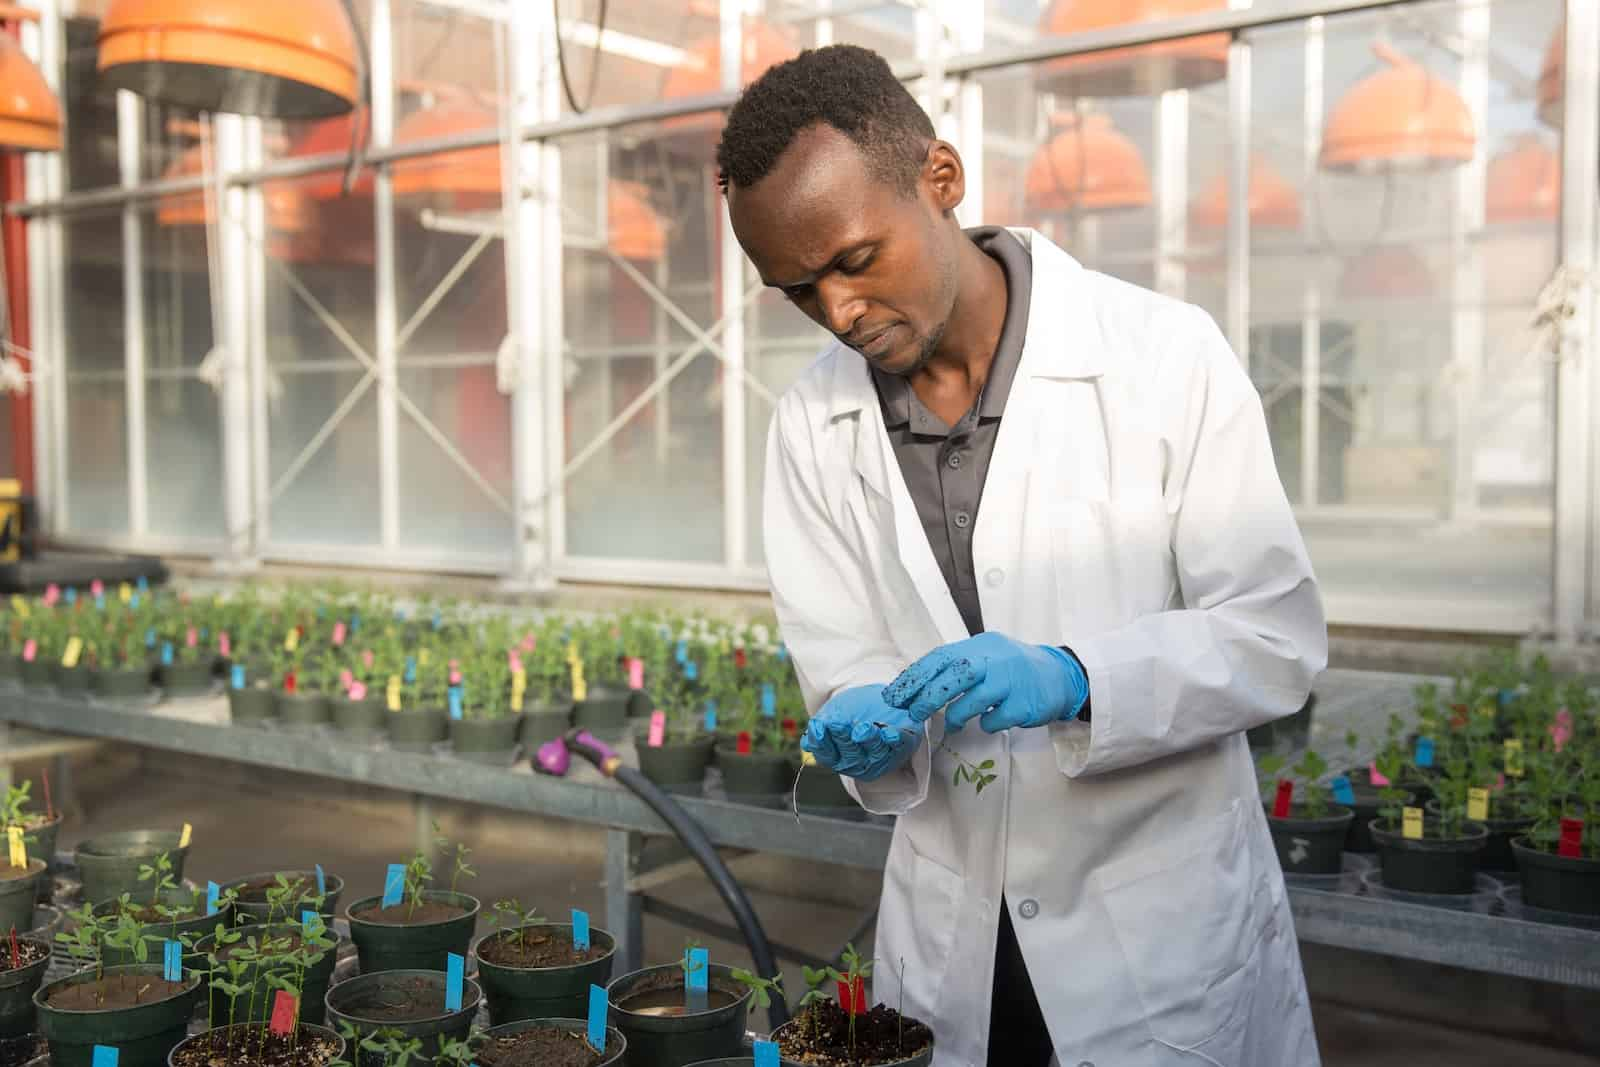 A man in a white lab coat and gloves looks at plants in a greenhouse.